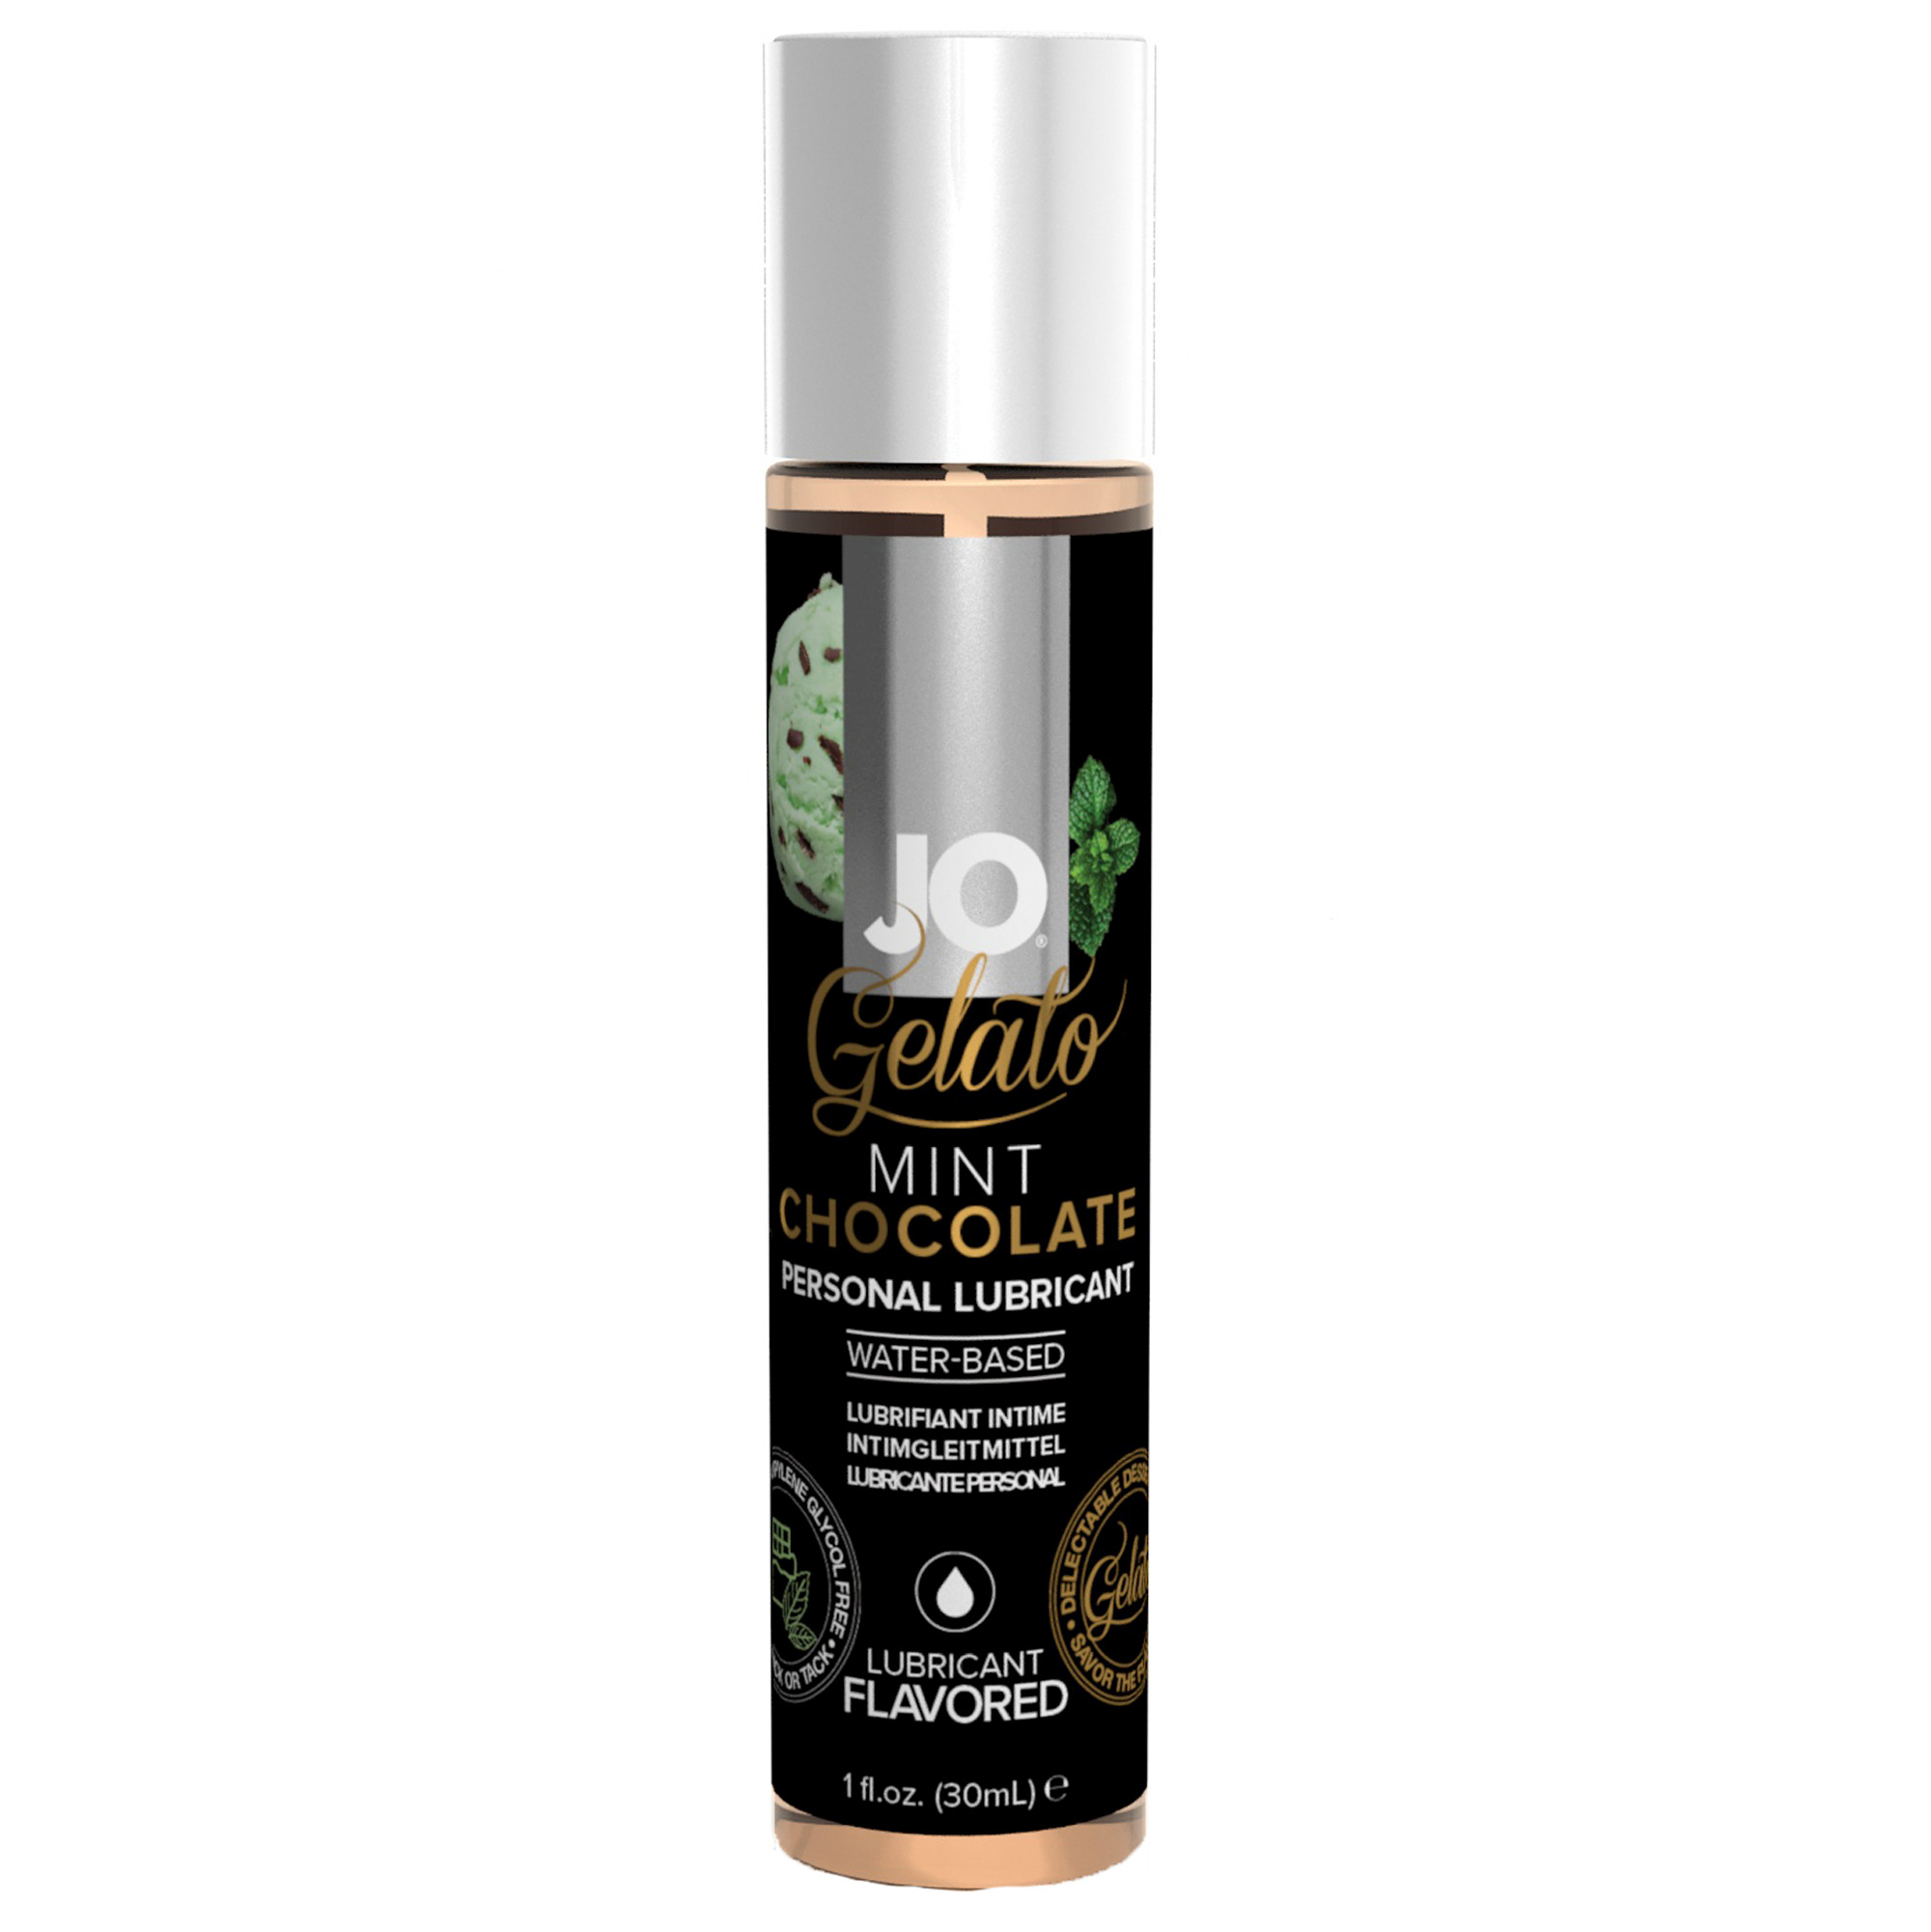 JO Gelato Mint Chocolate Lubricant 30 ml